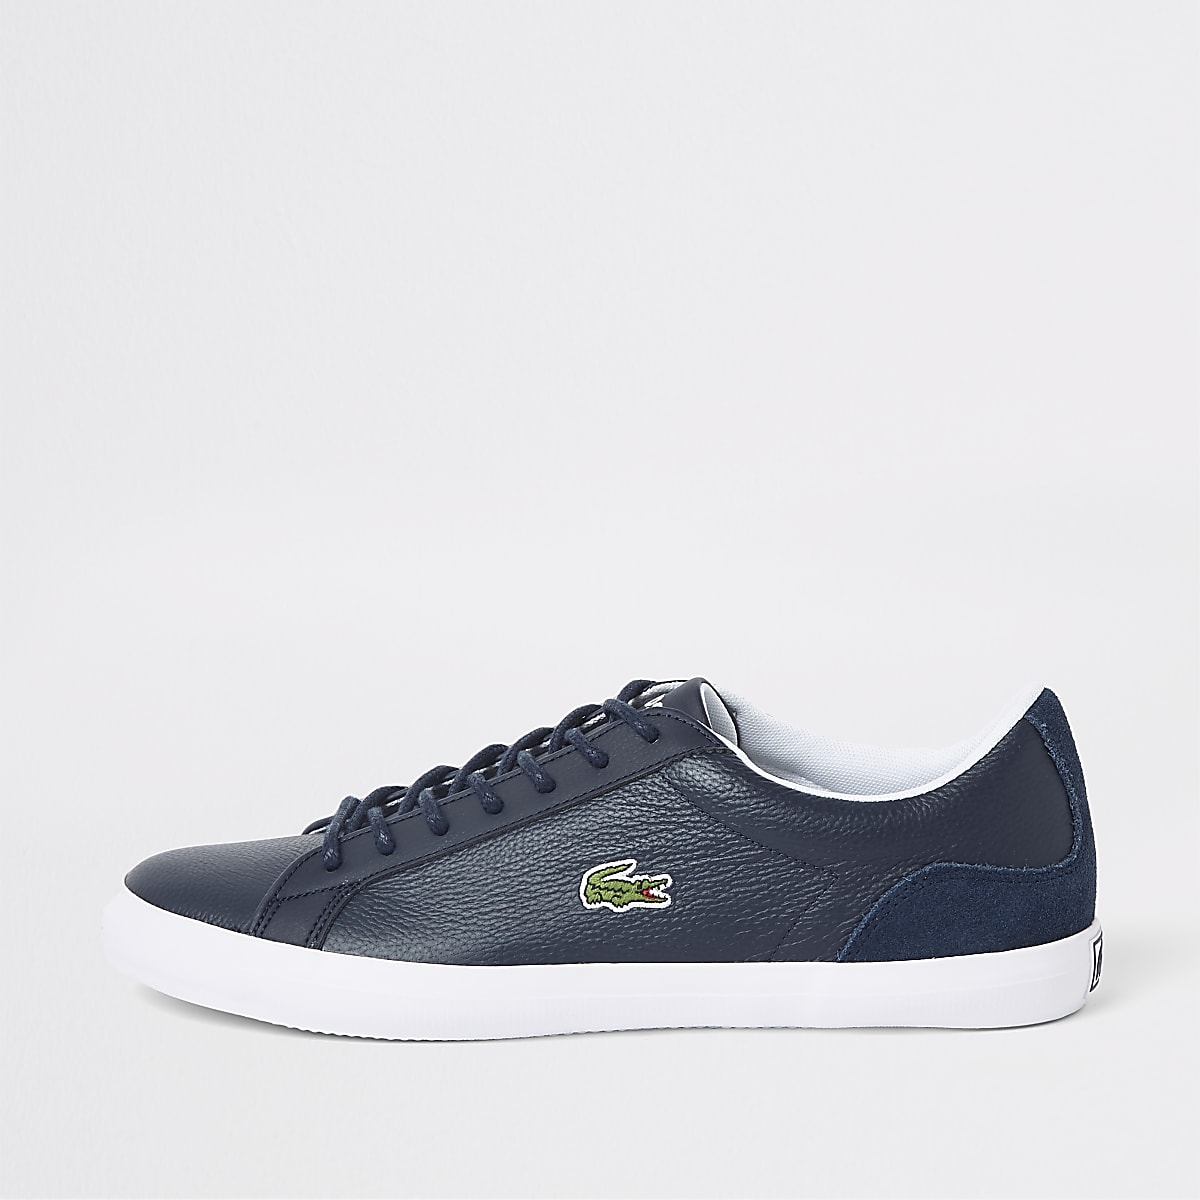 Lacoste navy textured lace-up trainers